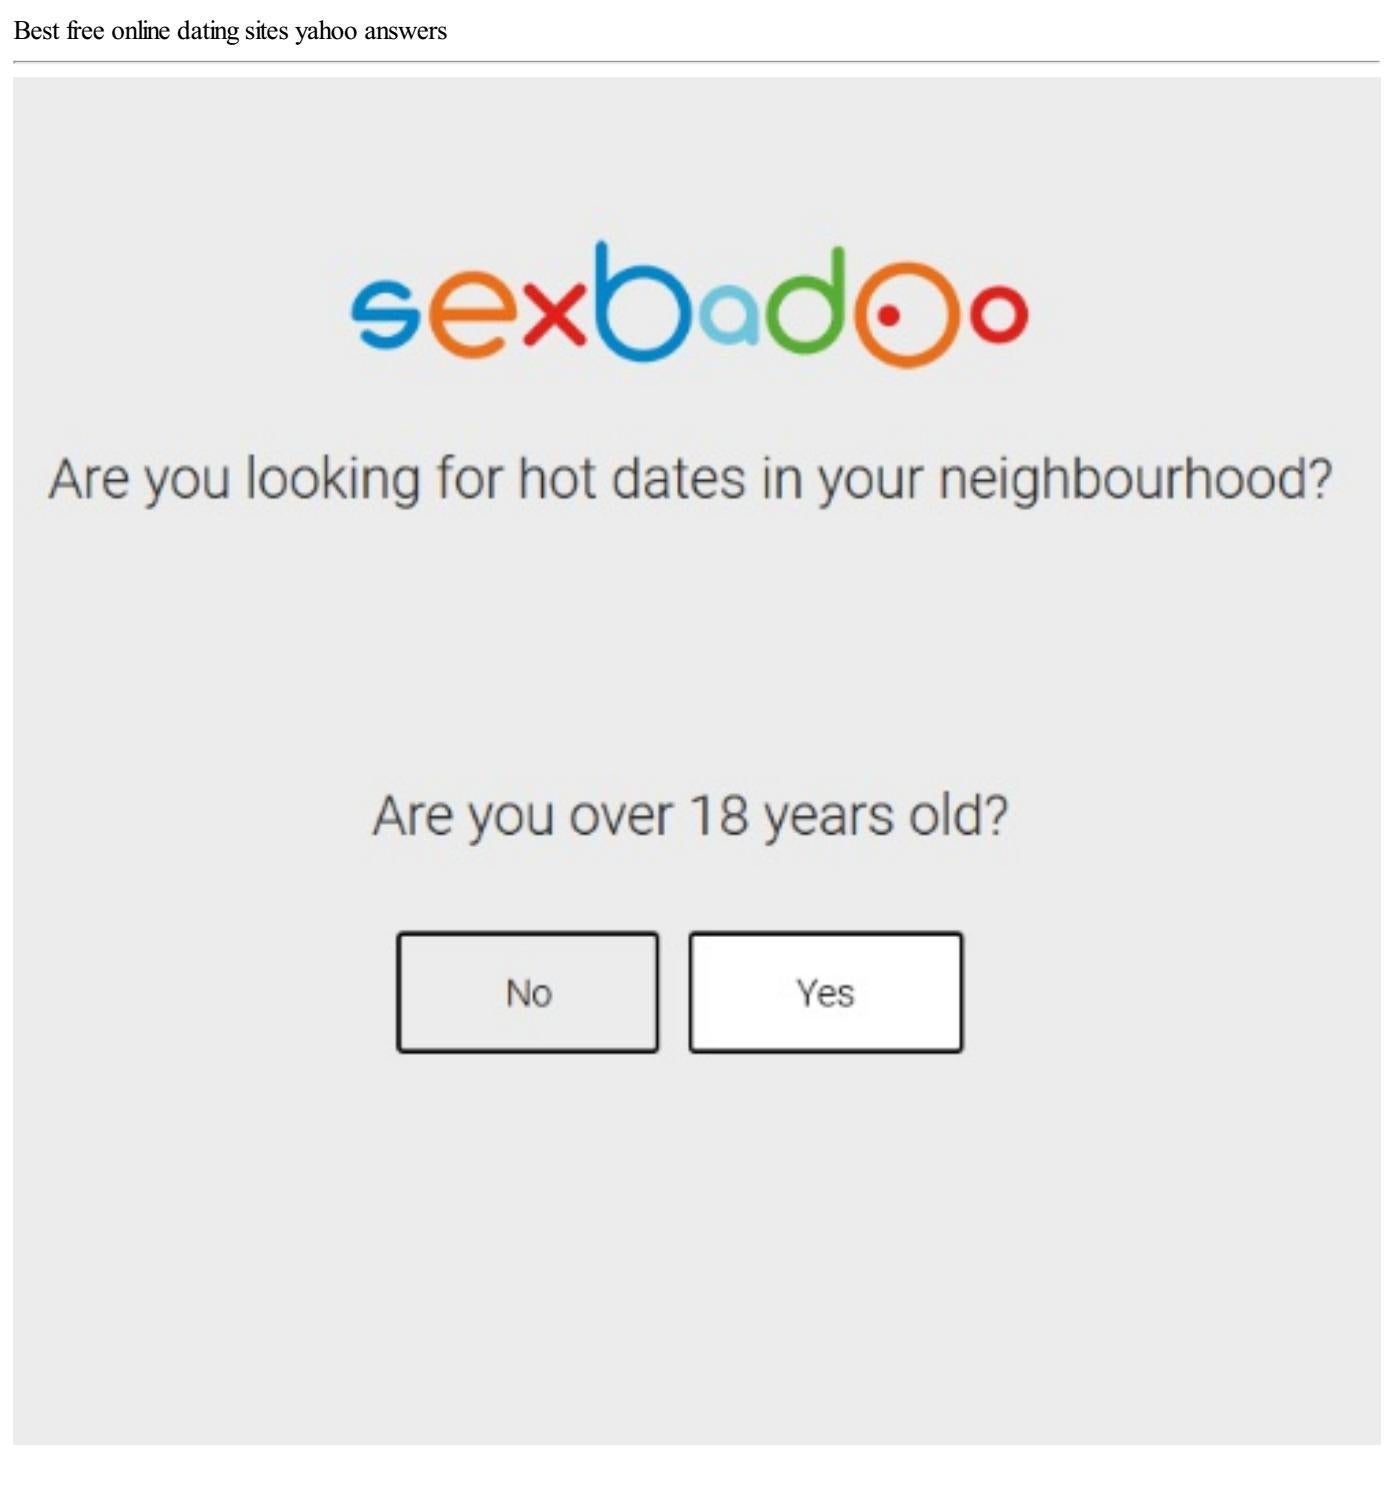 Beste Online-Dating-Website yahoo